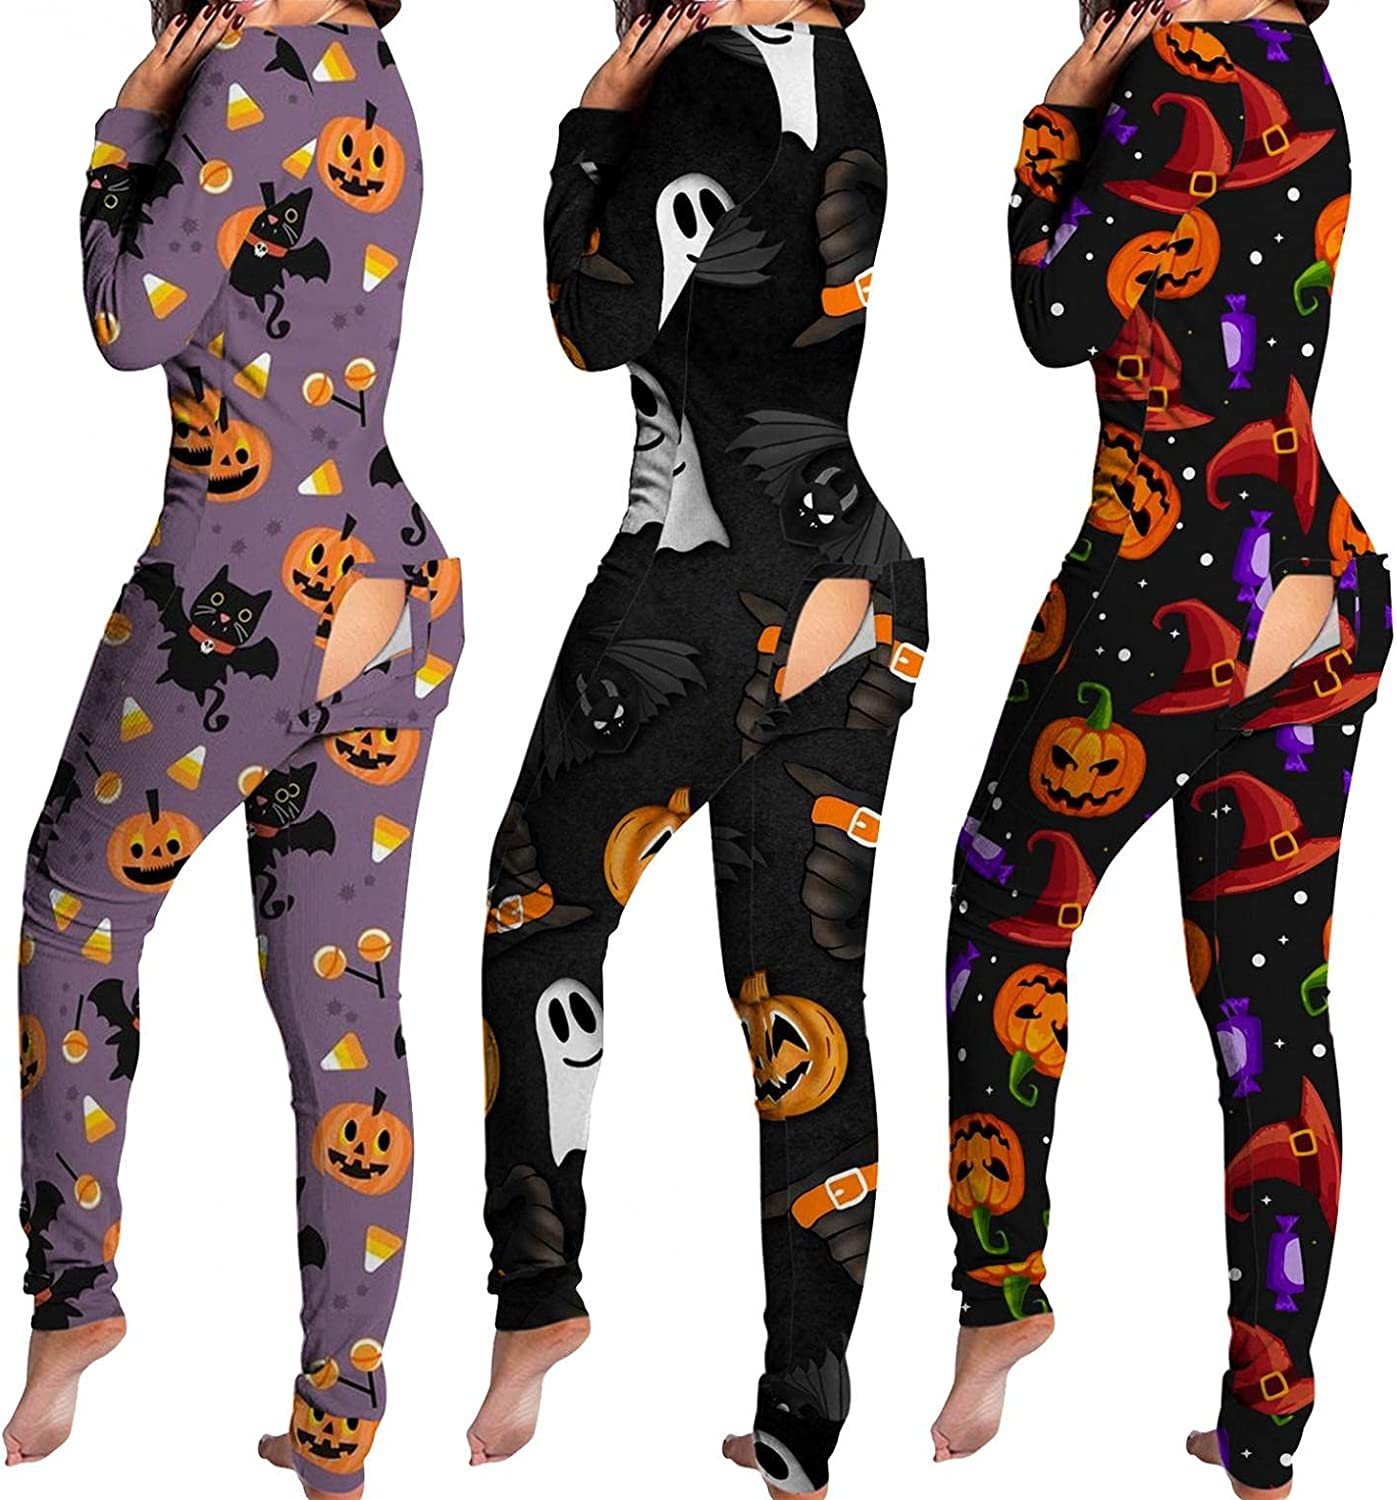 Lingbing Halloween Jumpsuits for Women, Funny Pumpkin Black Cat Print Costumes Sexy V Neck Bodysuits Button Down Pajamas